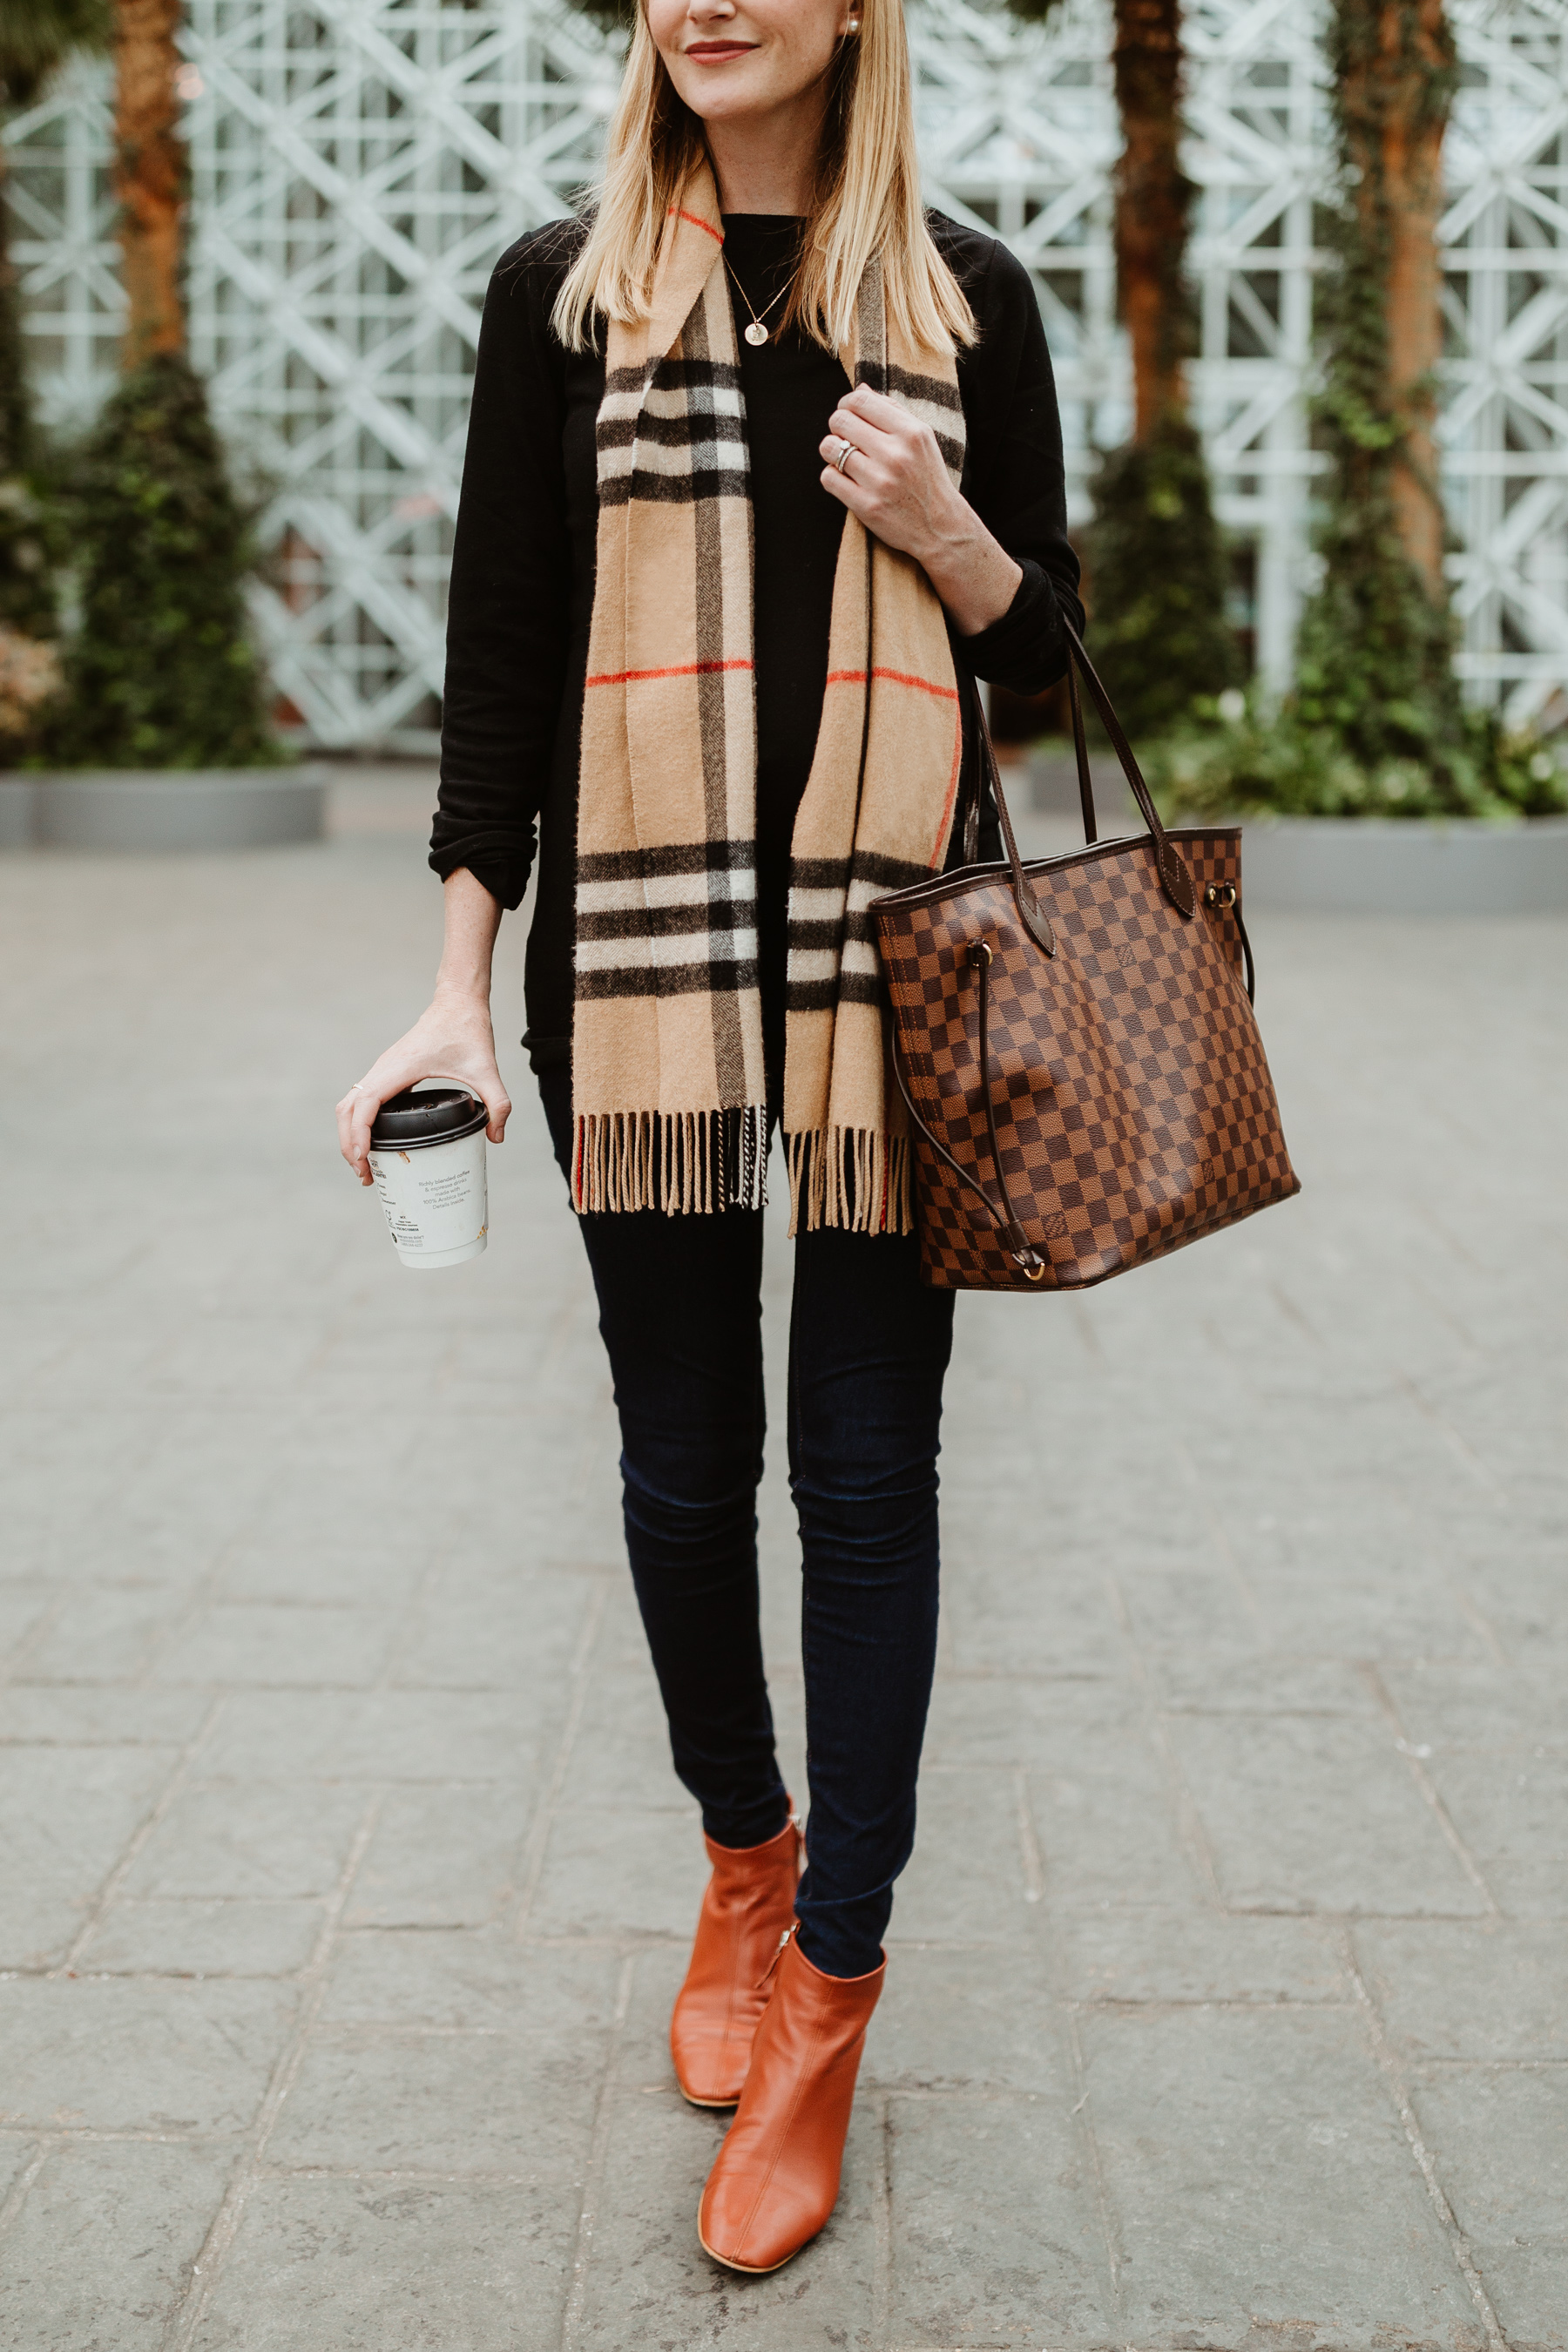 """Kelly's Outfit: Everlane Day Boot c/o / Gold Initial Necklace /Softest """"Modern Boatneck"""" Tee by Gap / Louis Vuitton MM Neverfull Tote / Burberry Scarf/ Old Navy Rockstar Jeans"""